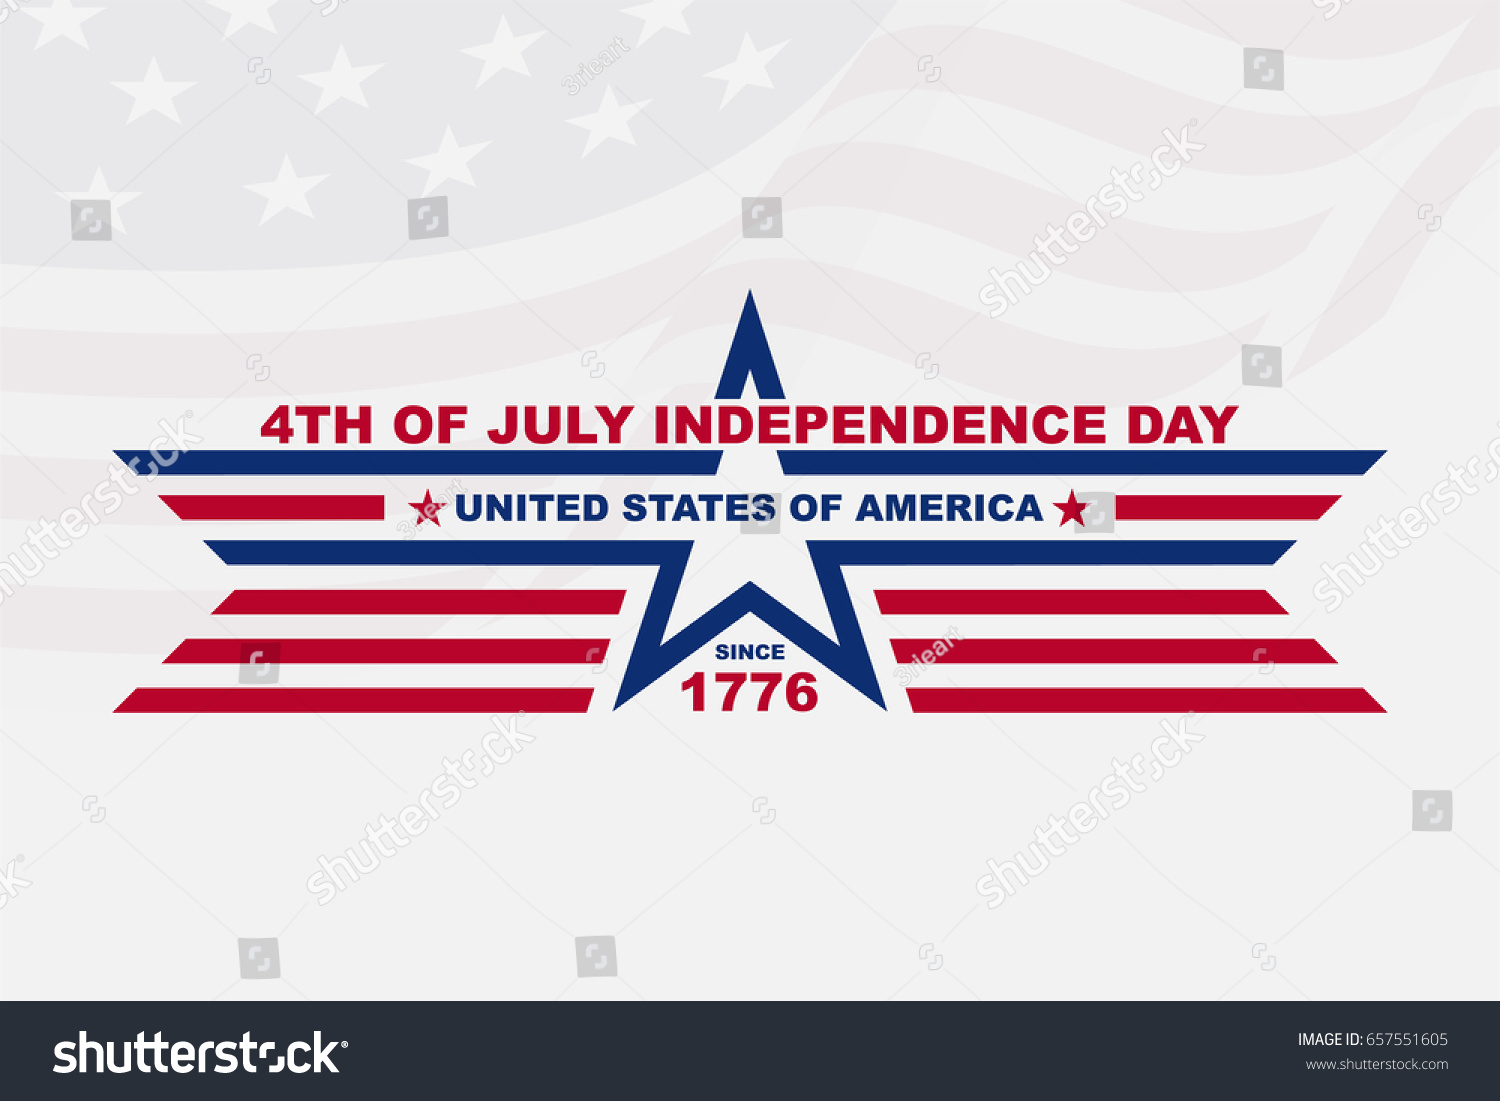 Clean Flat American Independence Day Background For Greeting Card